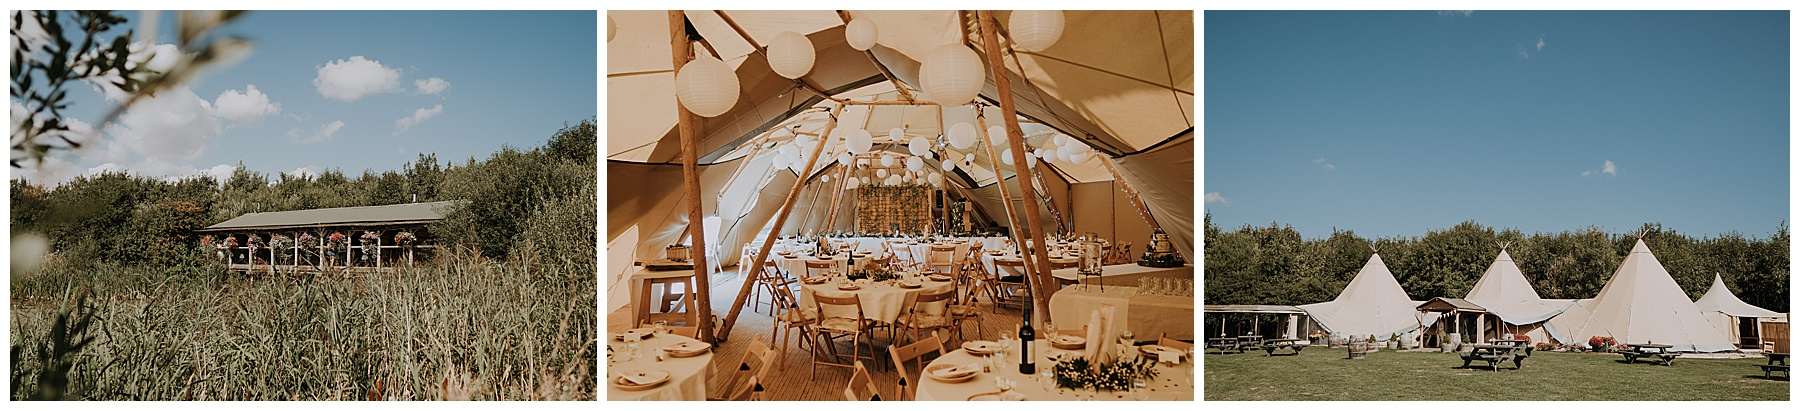 tipis and structures at a wedding venue